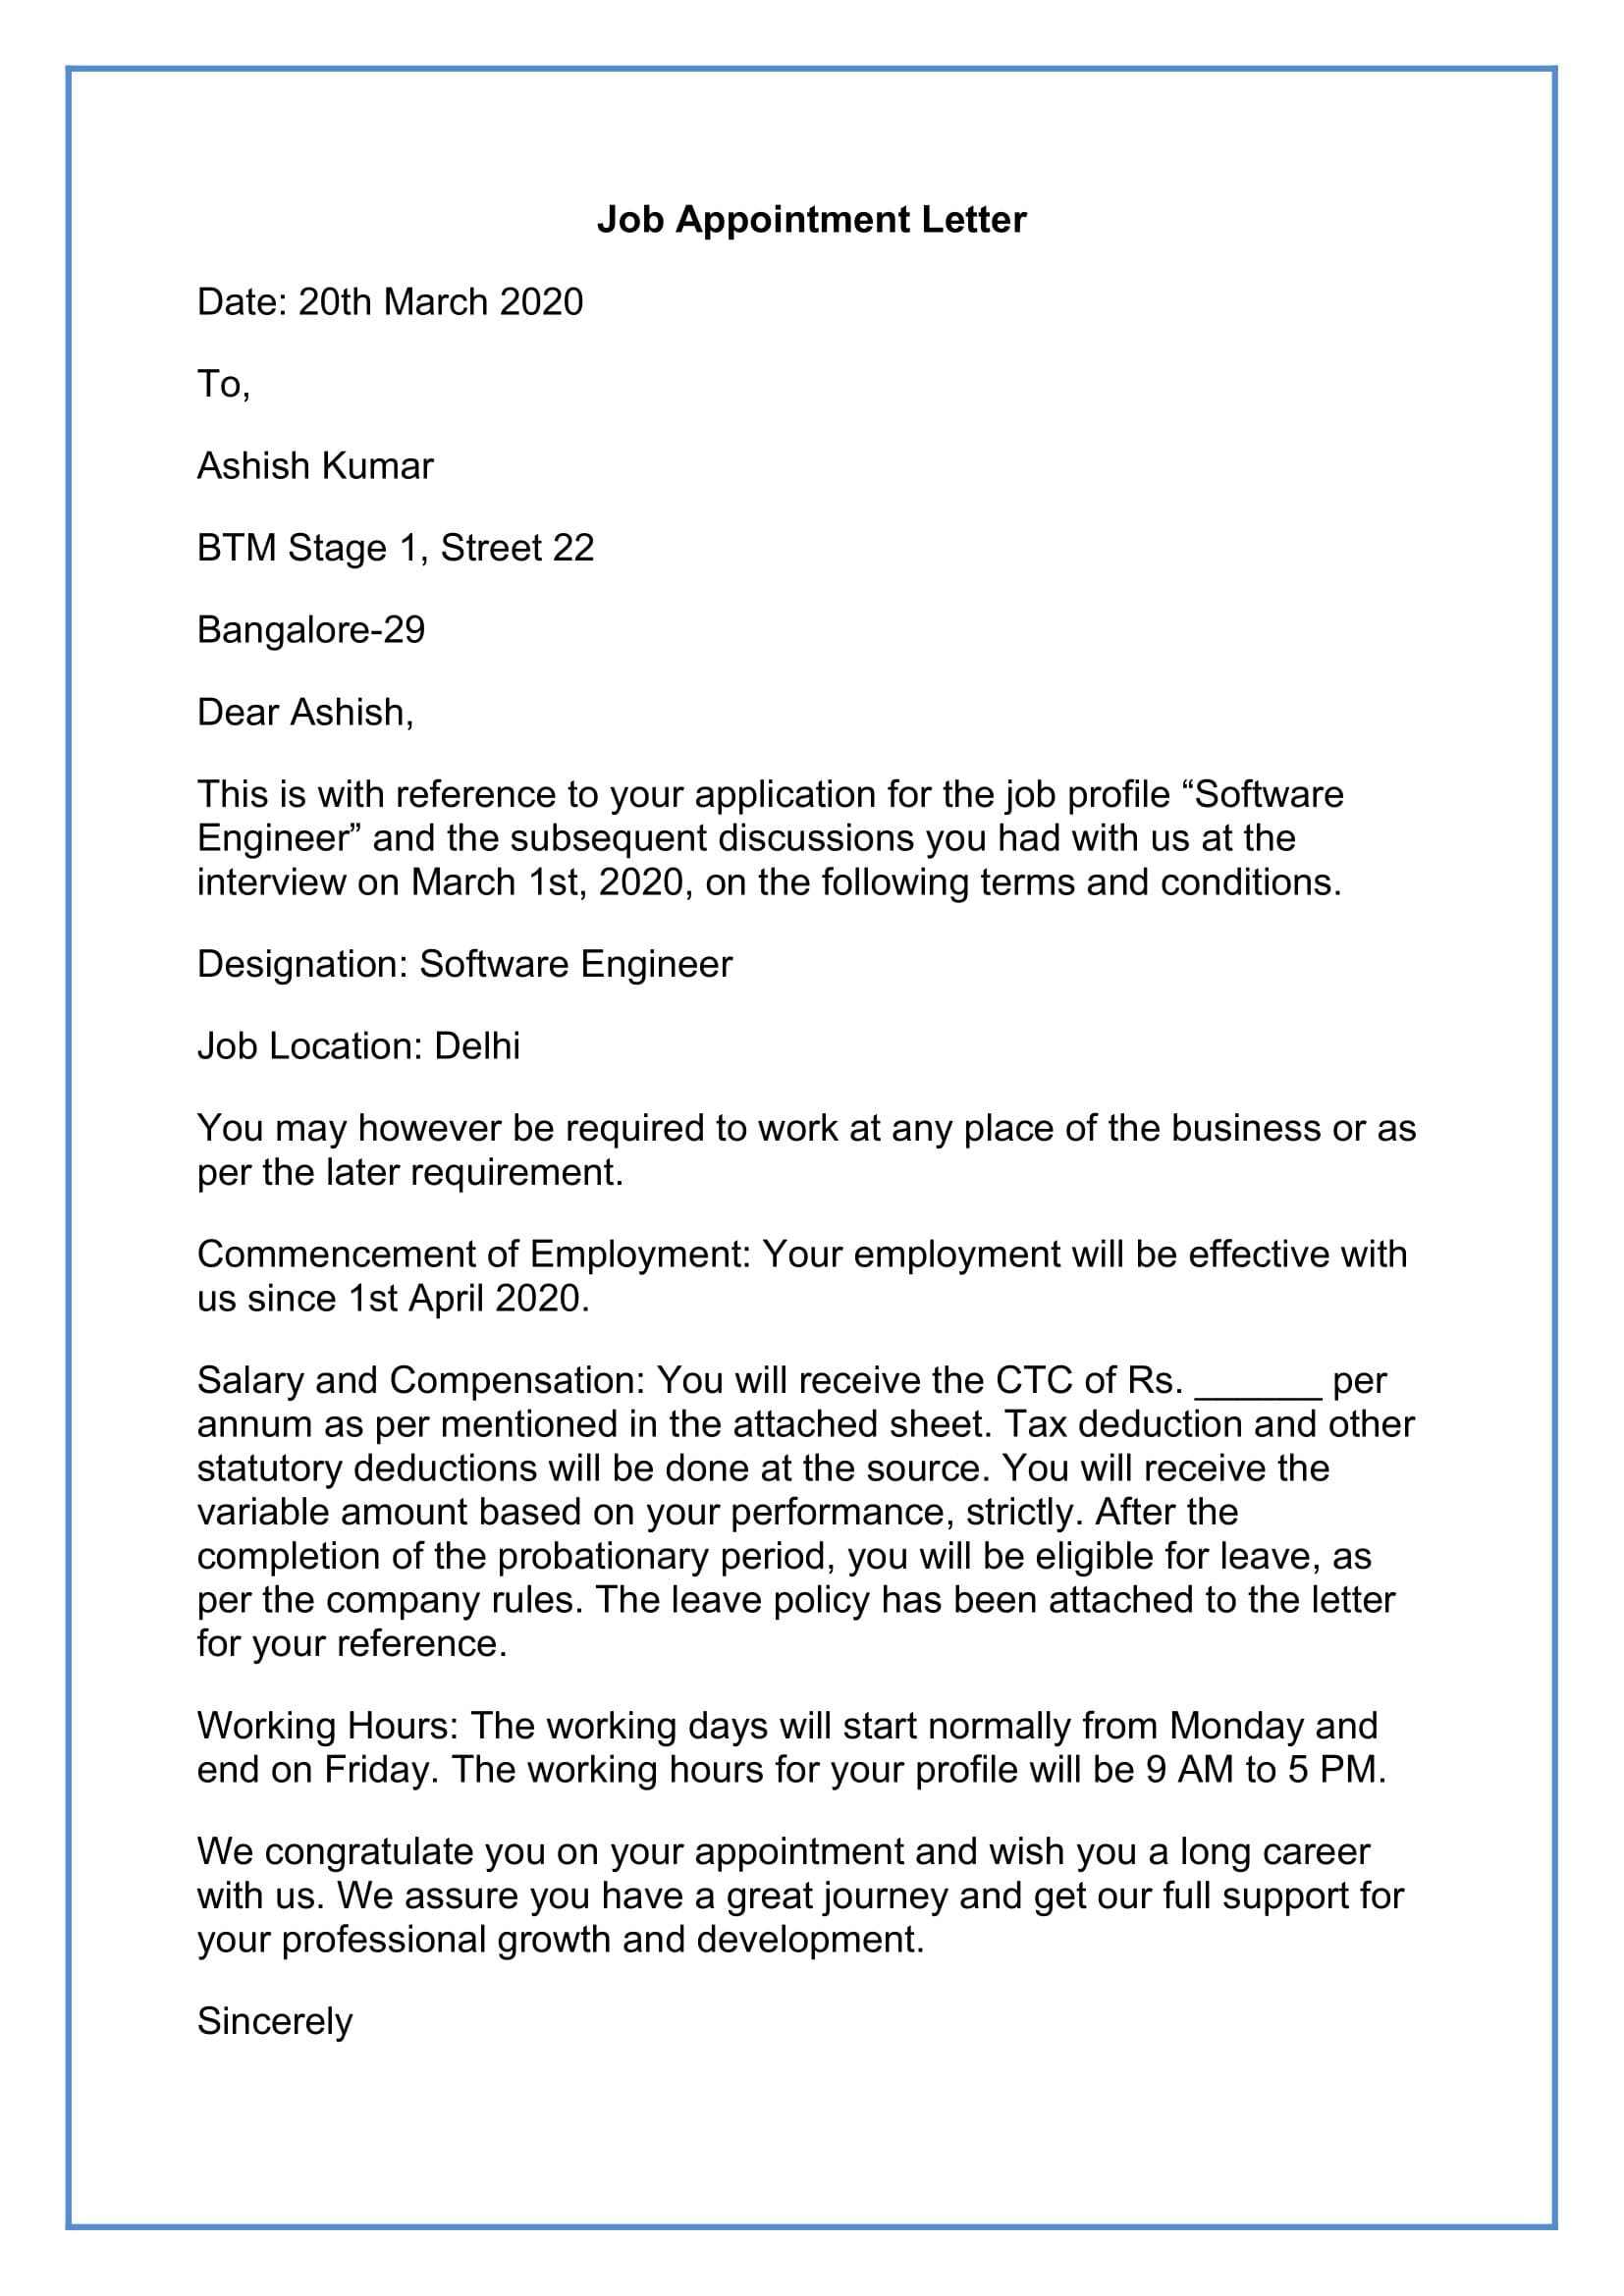 Job Appointment Letter